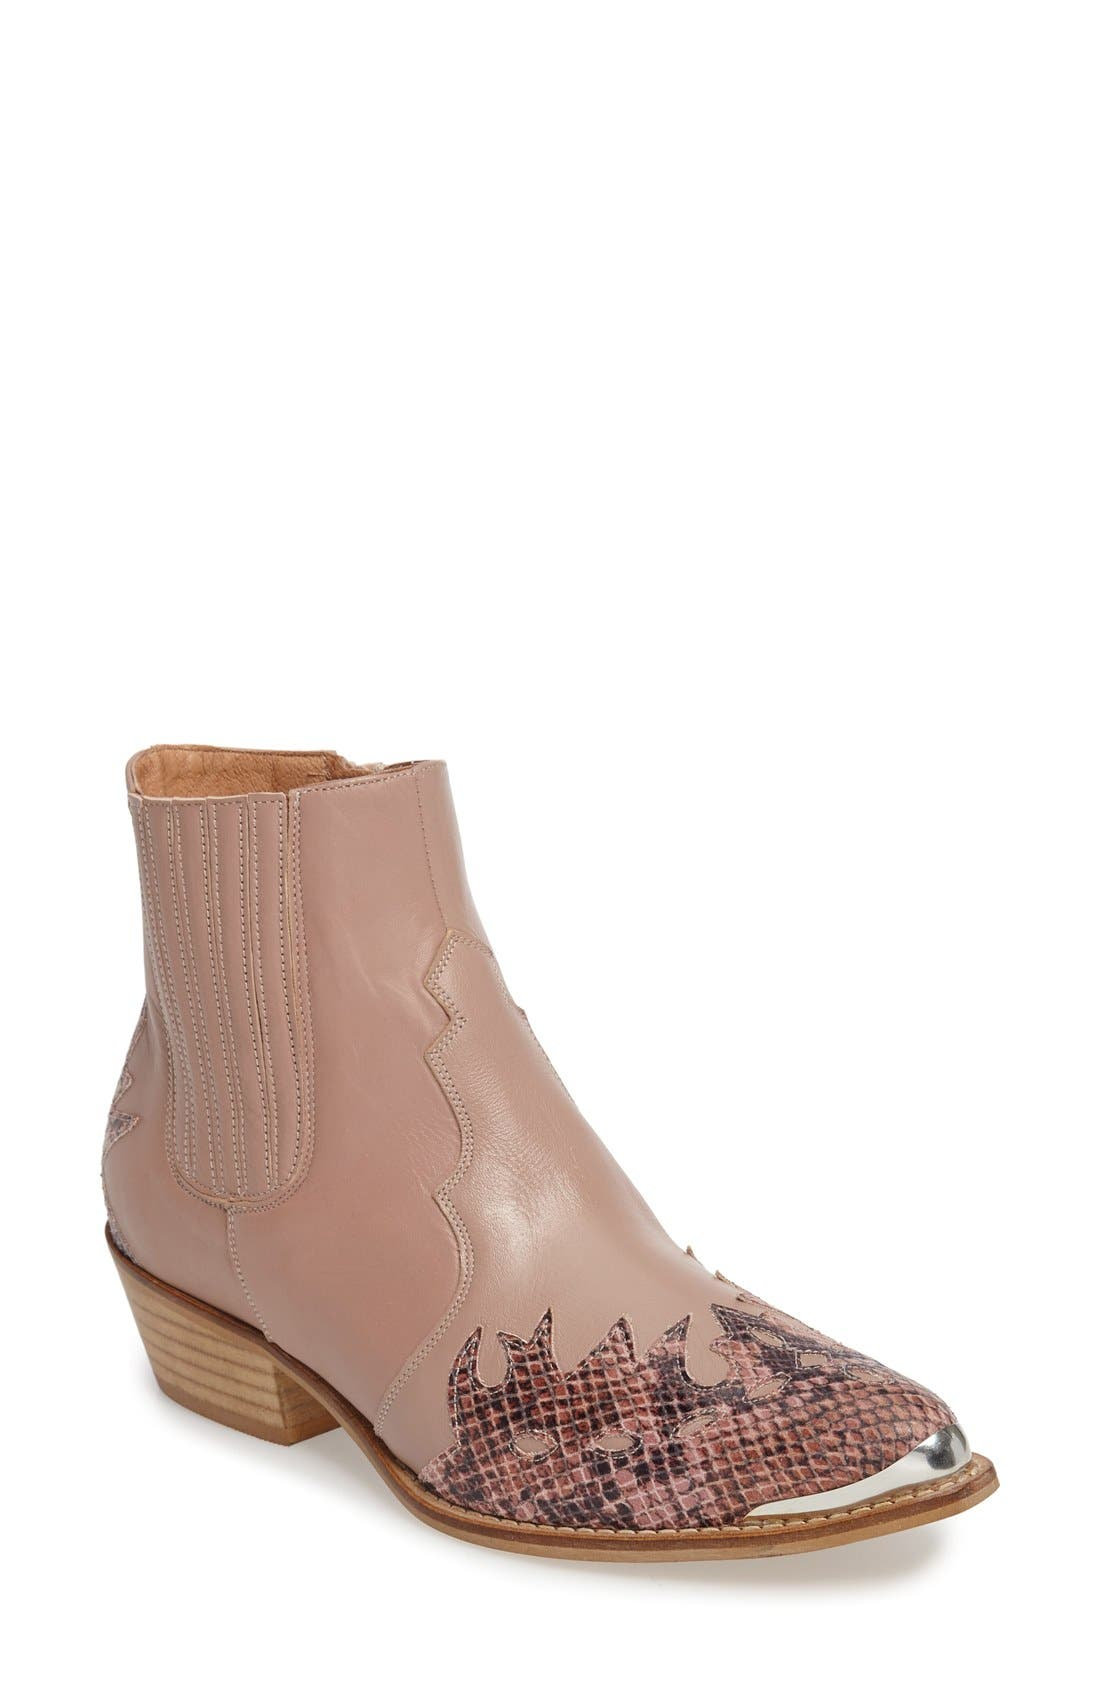 Alternate Image 1 Selected - Topshop 'Arson' Western Ankle Boots (Women)